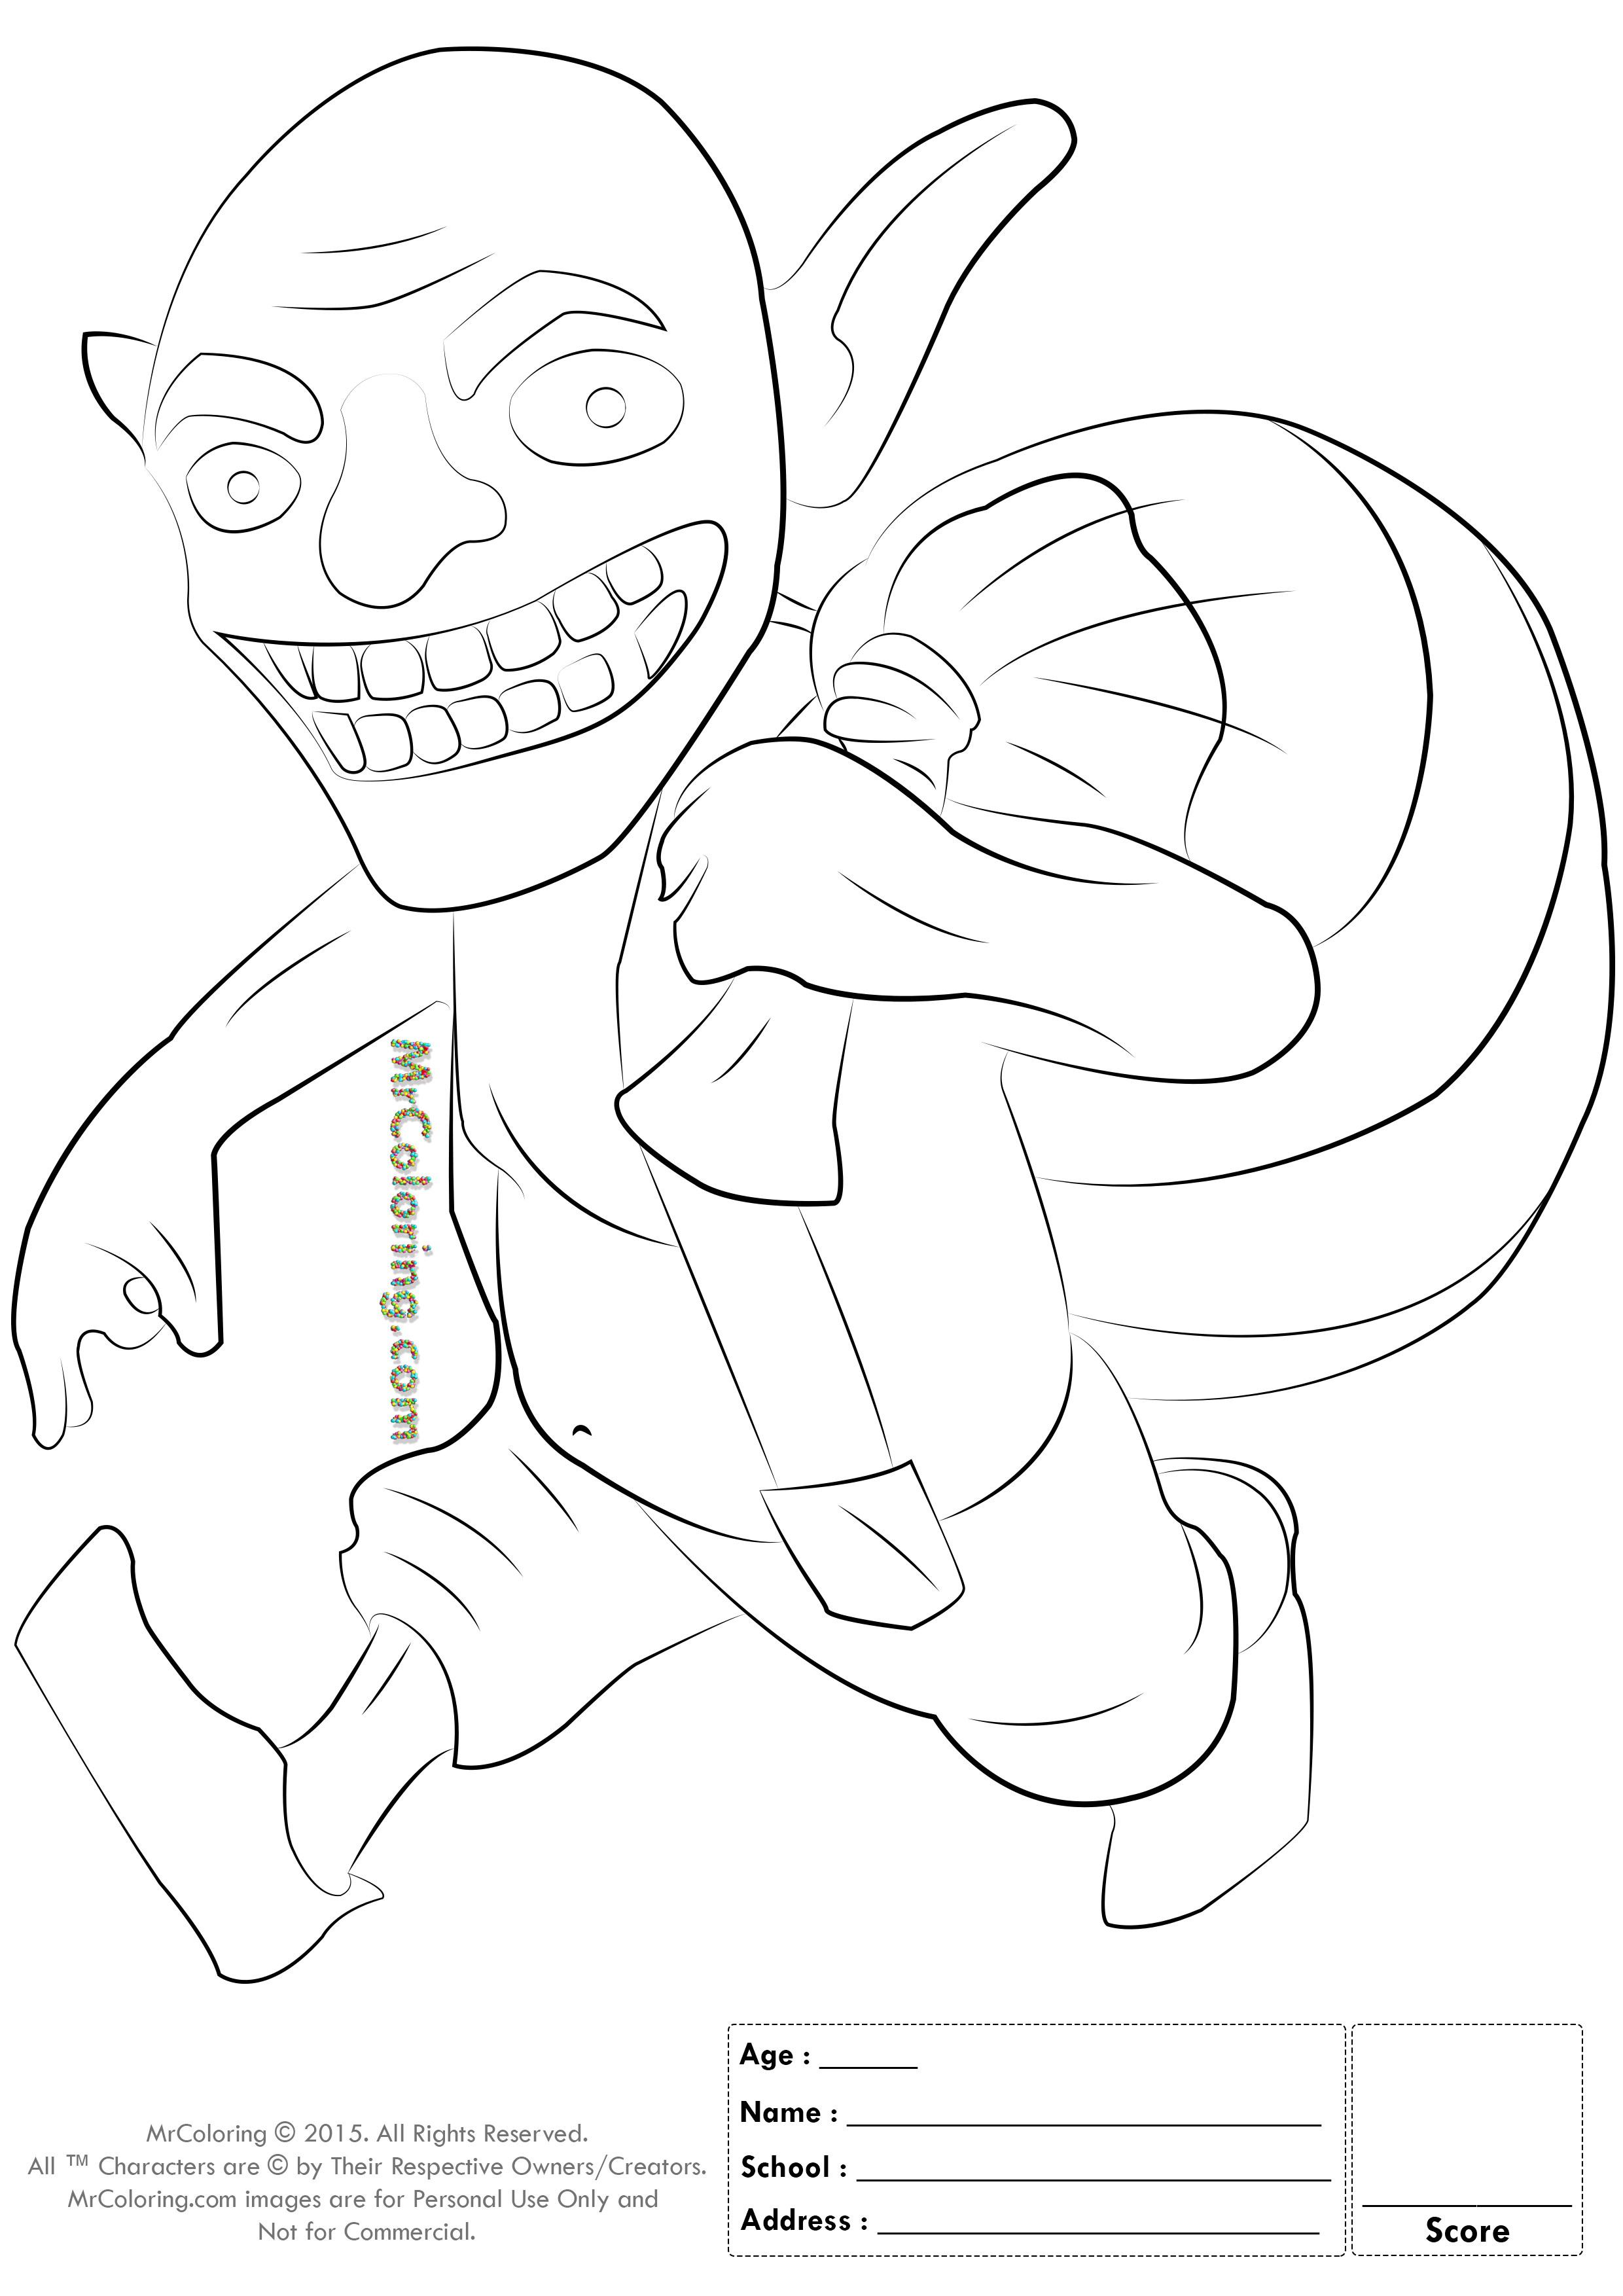 Free Printable Clash Of Clans Goblin Coloring Pages 2 Clash Of